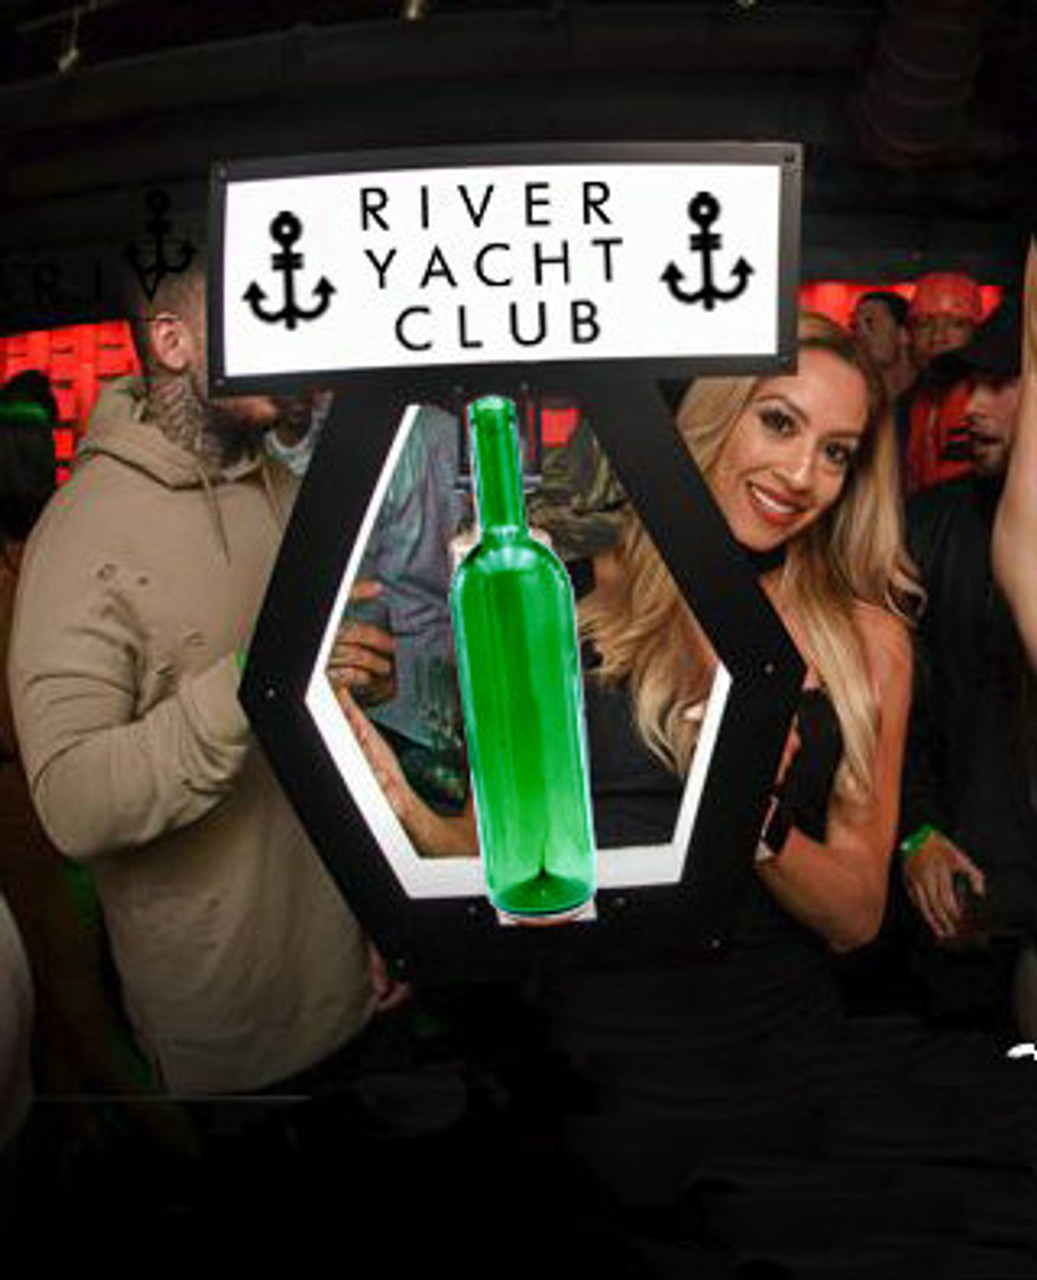 VIP,BANNER ,TOP, VIP, BOTTLE, SERVICE, DELIVERY ,PRESENTER,champagne, tray